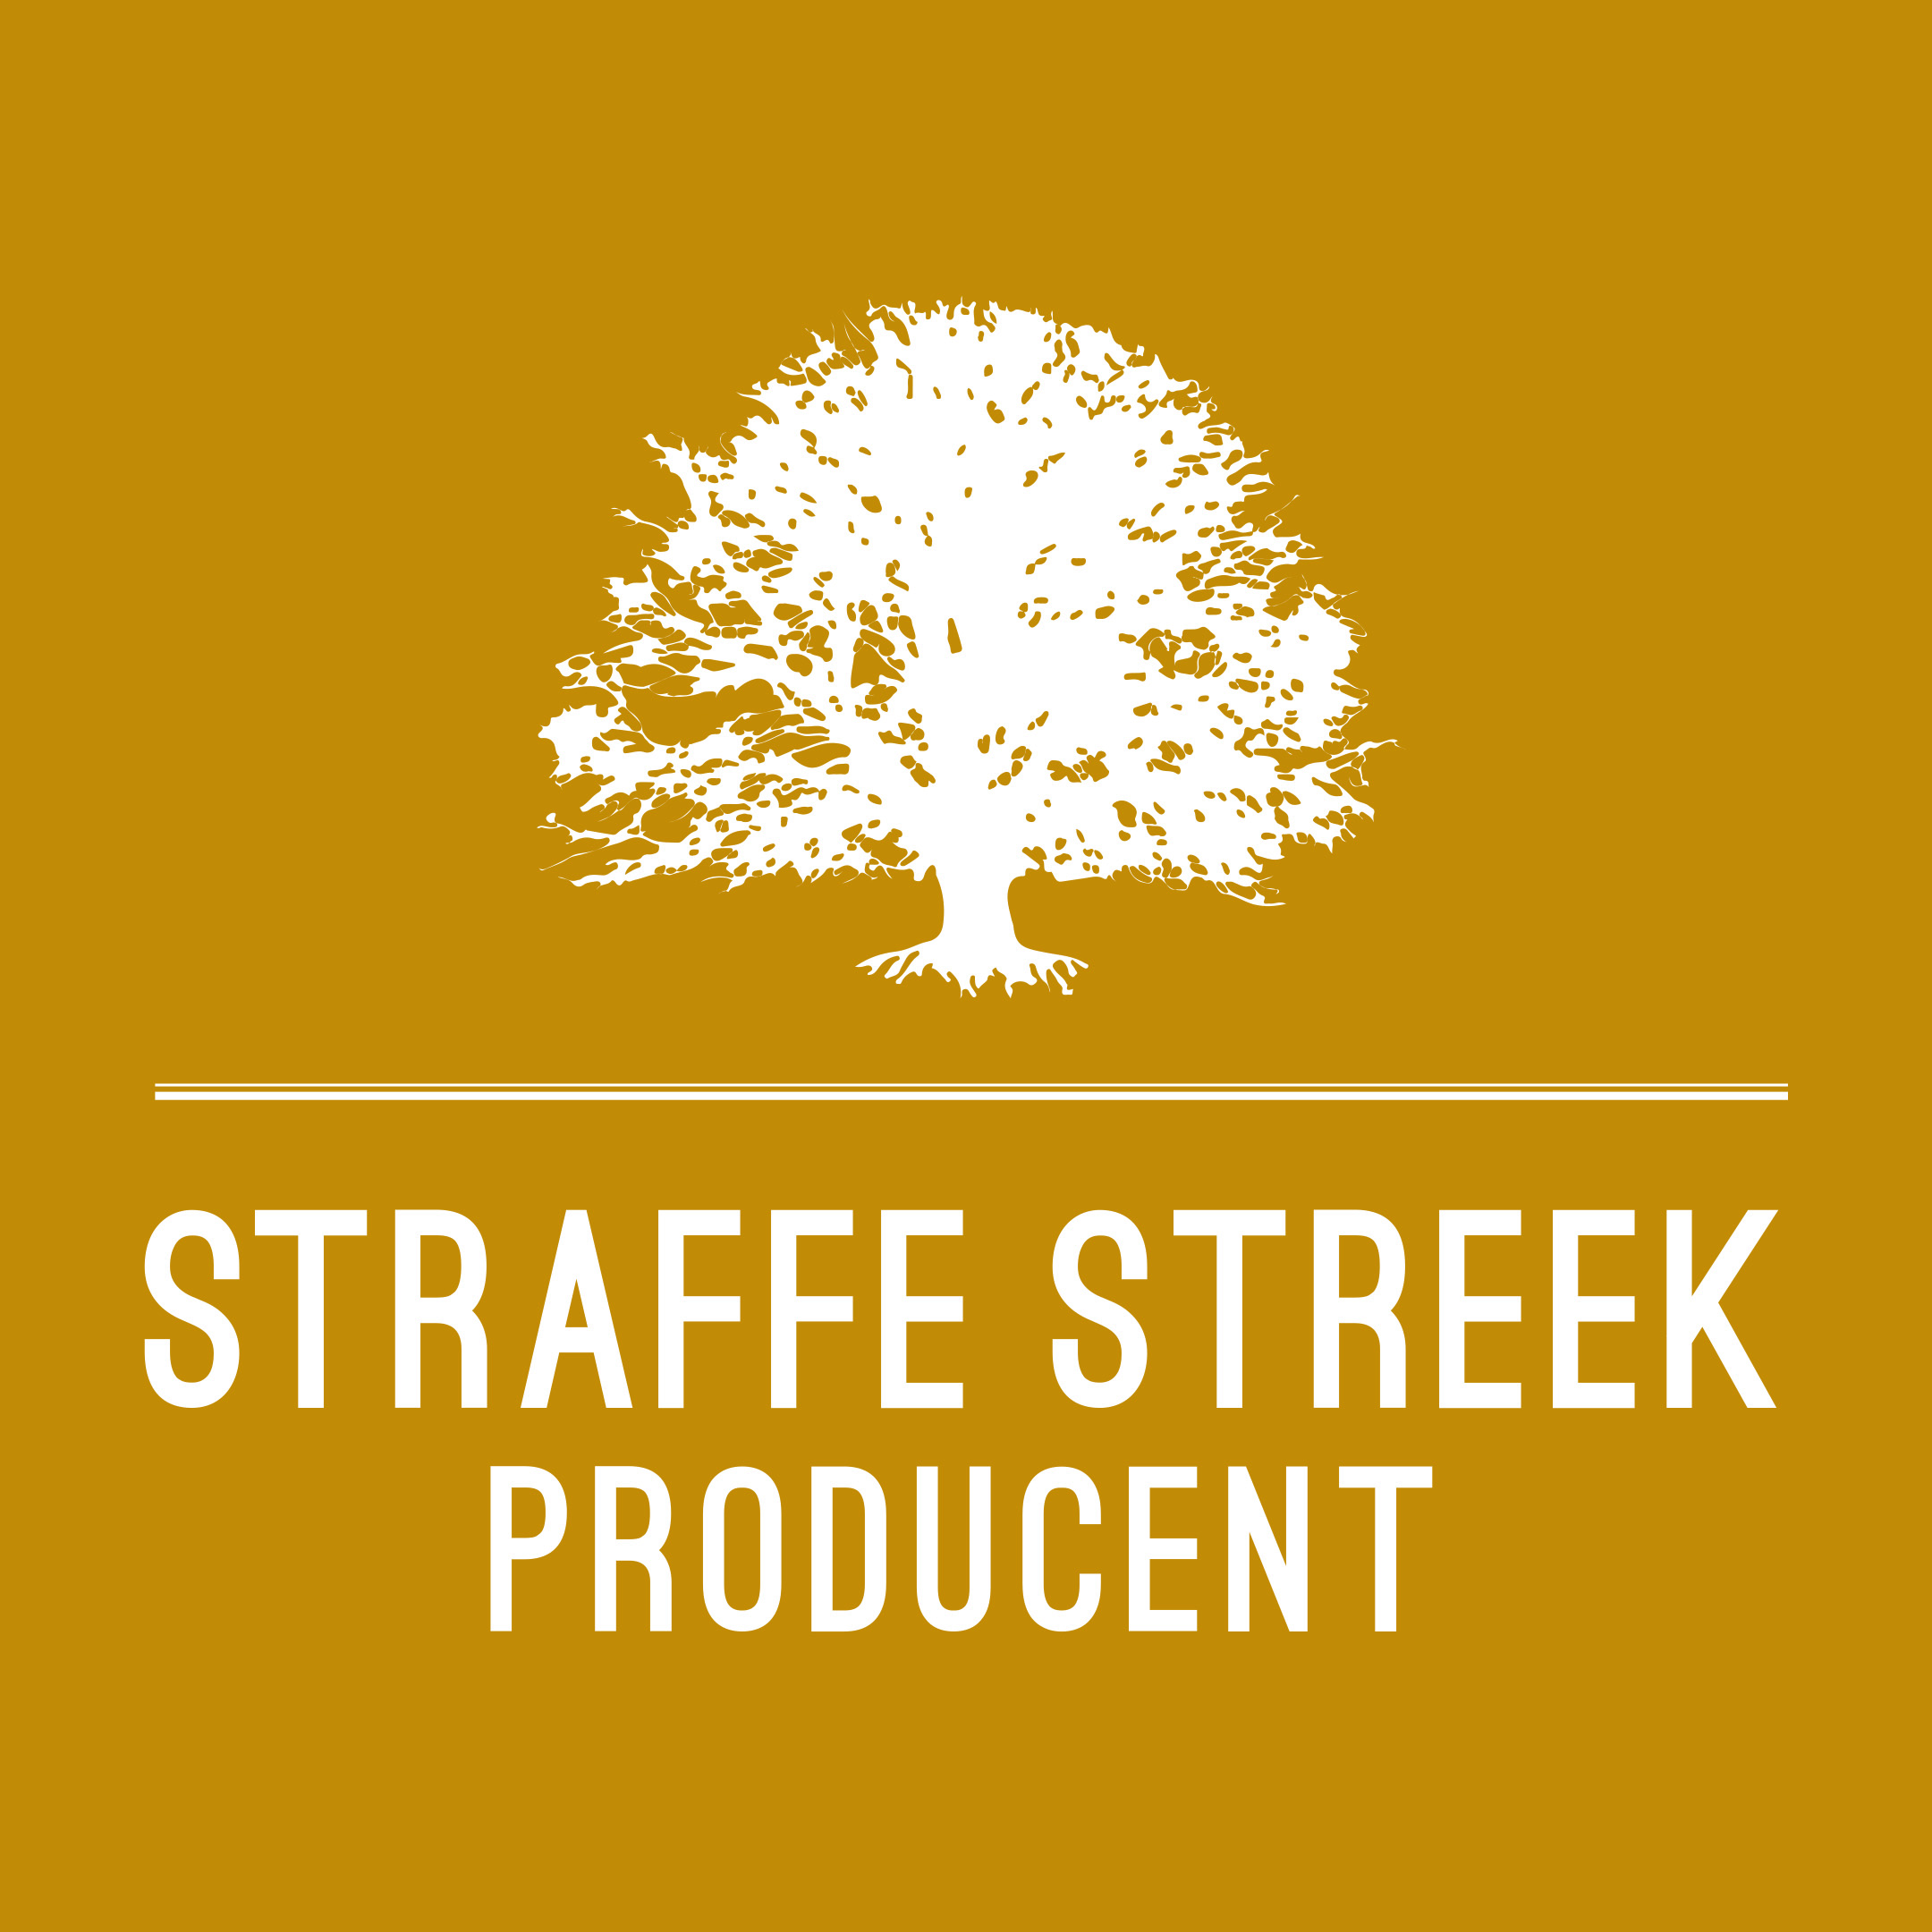 Straffe Streek producent-wit[235]